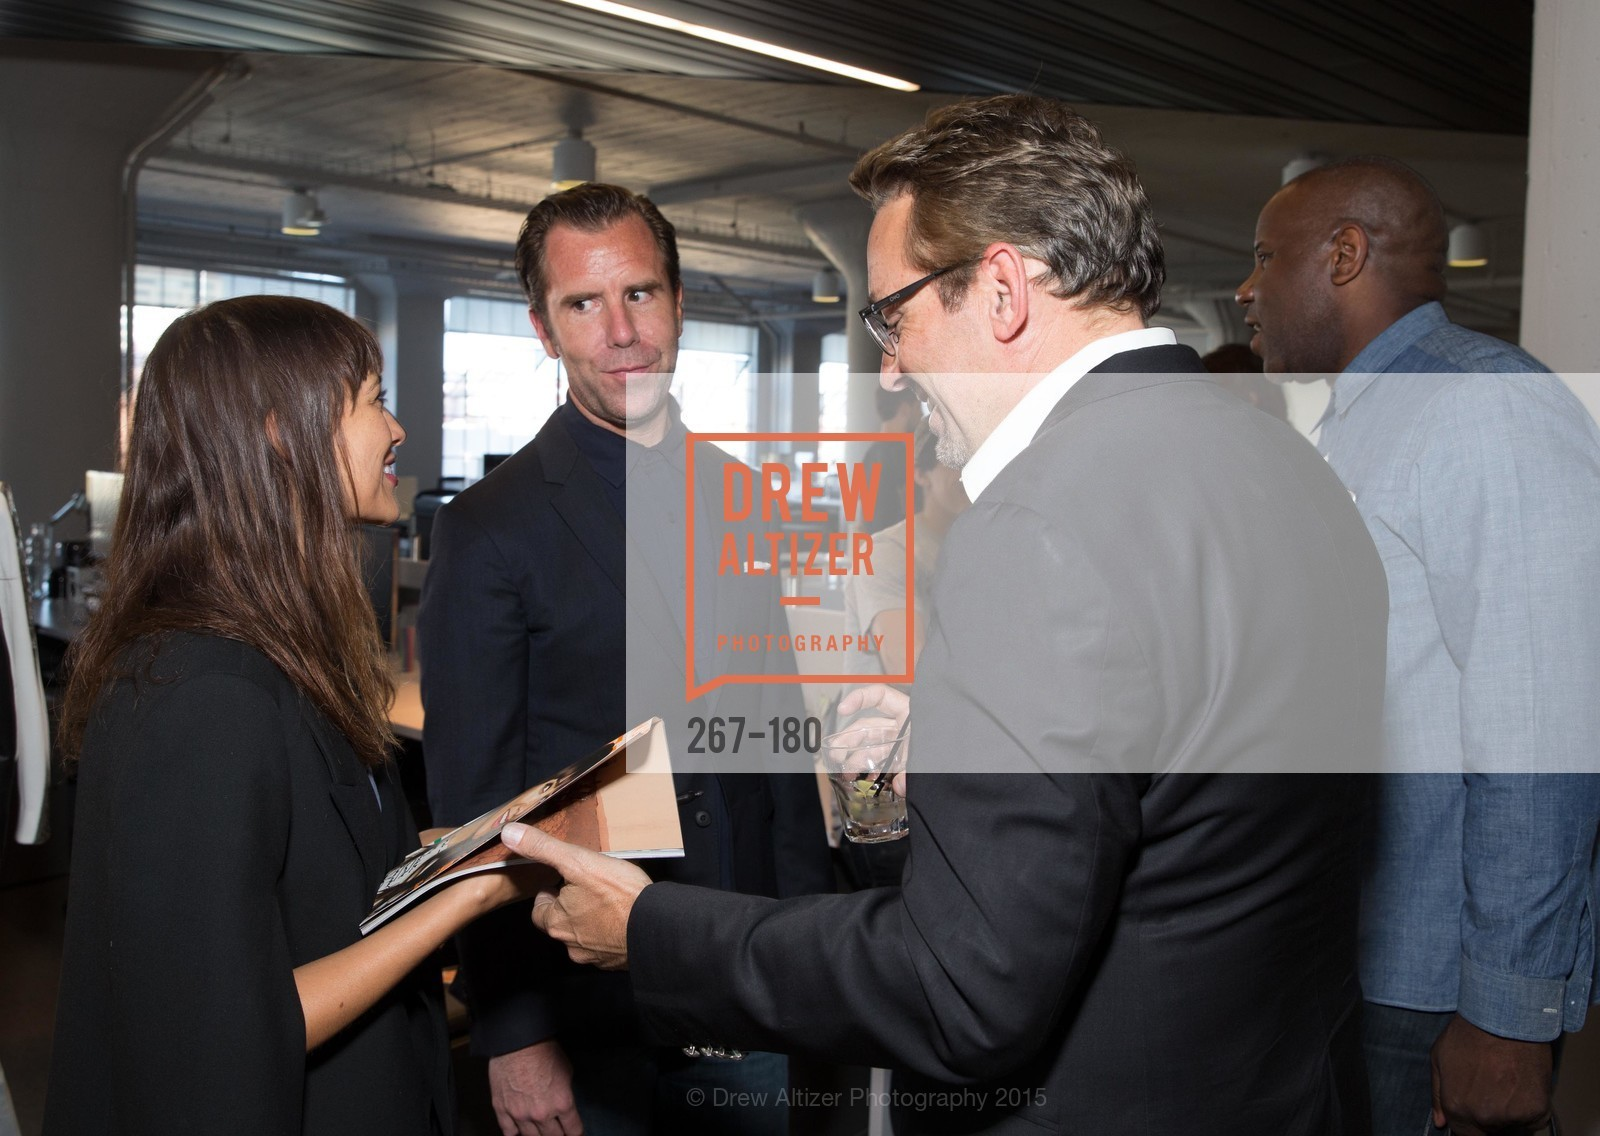 Rashida Jones, Scott Dadich, Art Streiber, Wired Magazine July Cover Release Celebration at New Wired Office, Wired Magazine Offices. 520 3rd Street, June 24th, 2015,Drew Altizer, Drew Altizer Photography, full-service agency, private events, San Francisco photographer, photographer california